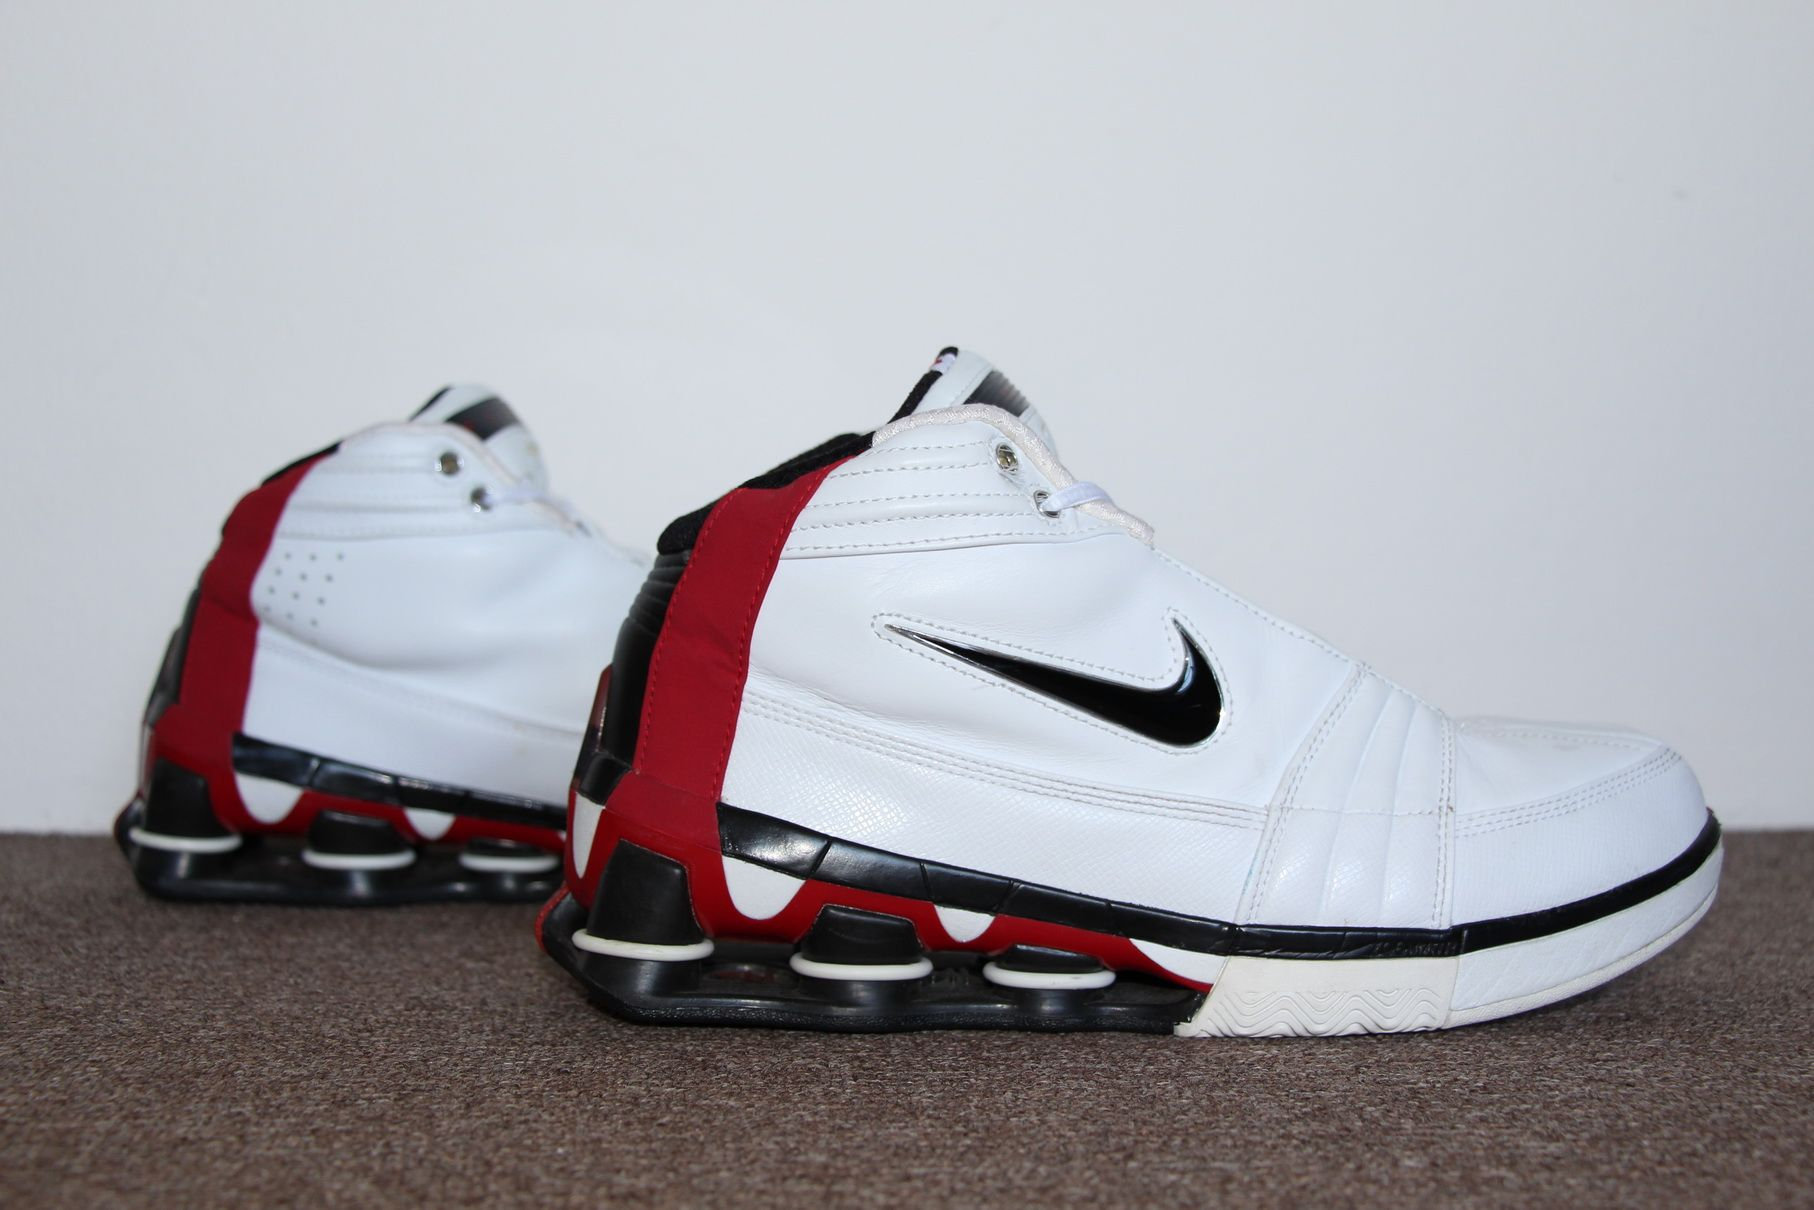 best website 6c7fd ce709 Nike Shox Vince Carter IV 2004 (White Black – Varsity Red) Basketball  Sneakers